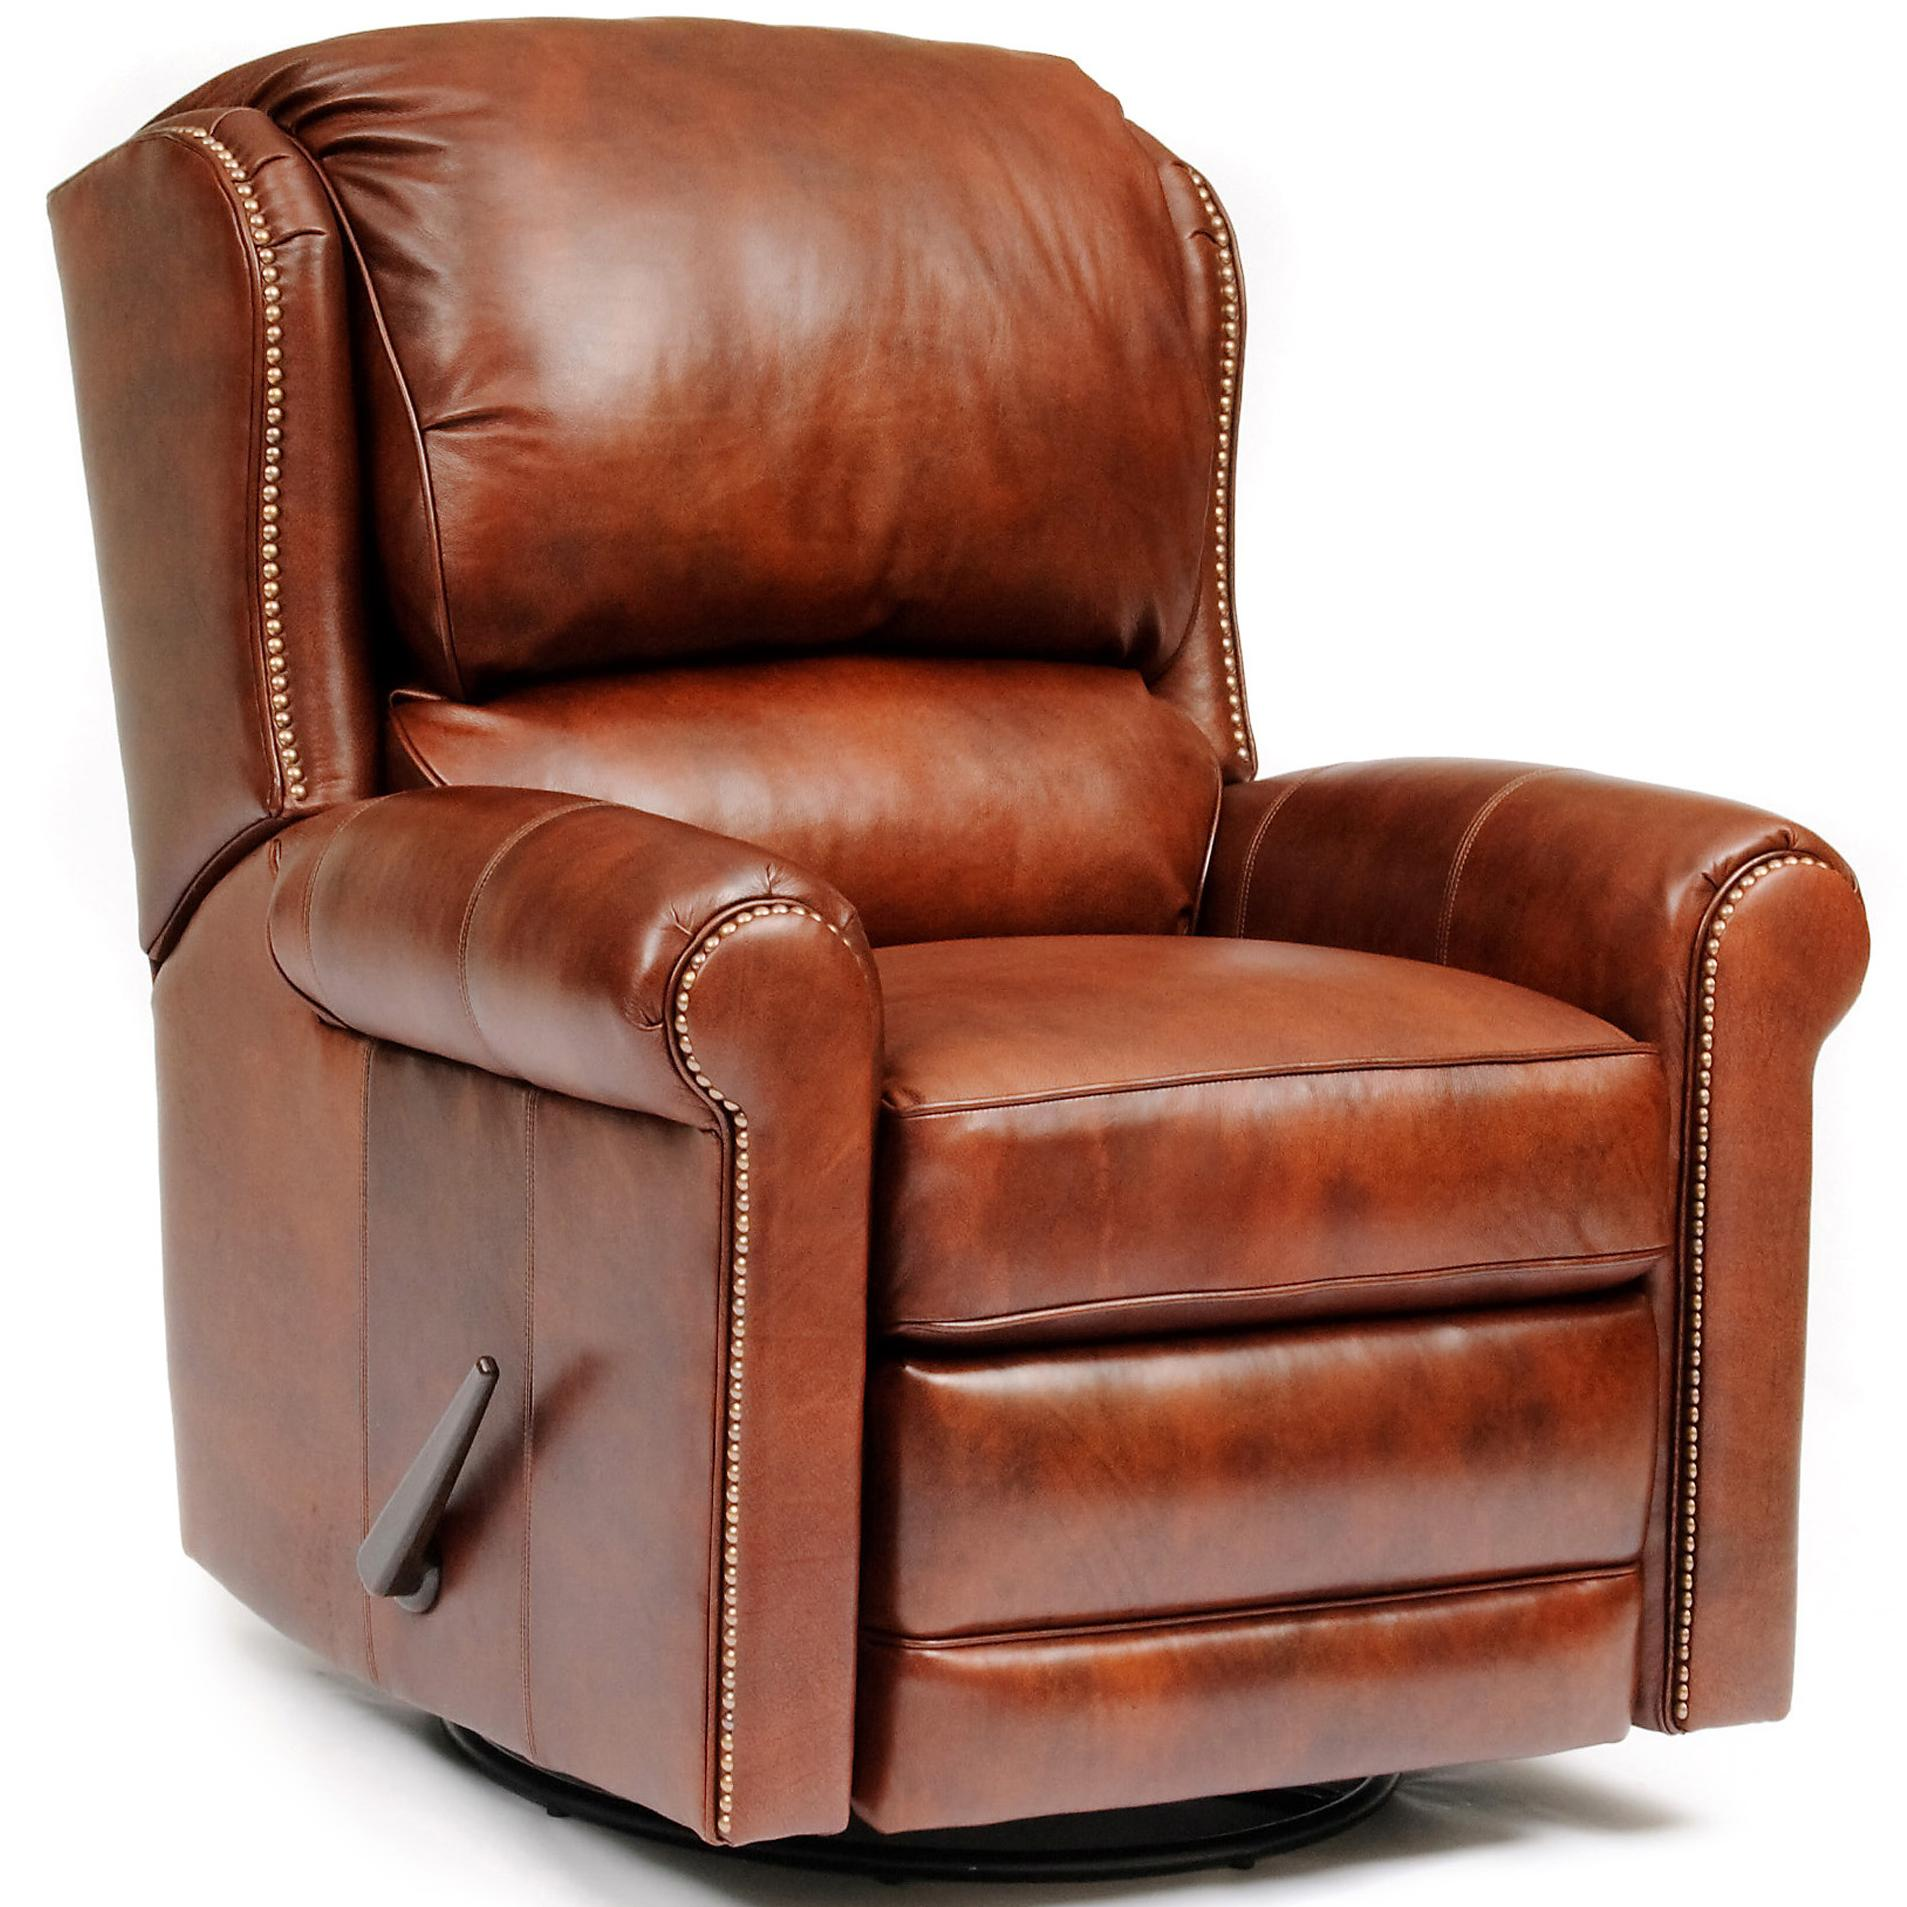 720L Casual Recliner  by Smith Brothers at Westrich Furniture & Appliances